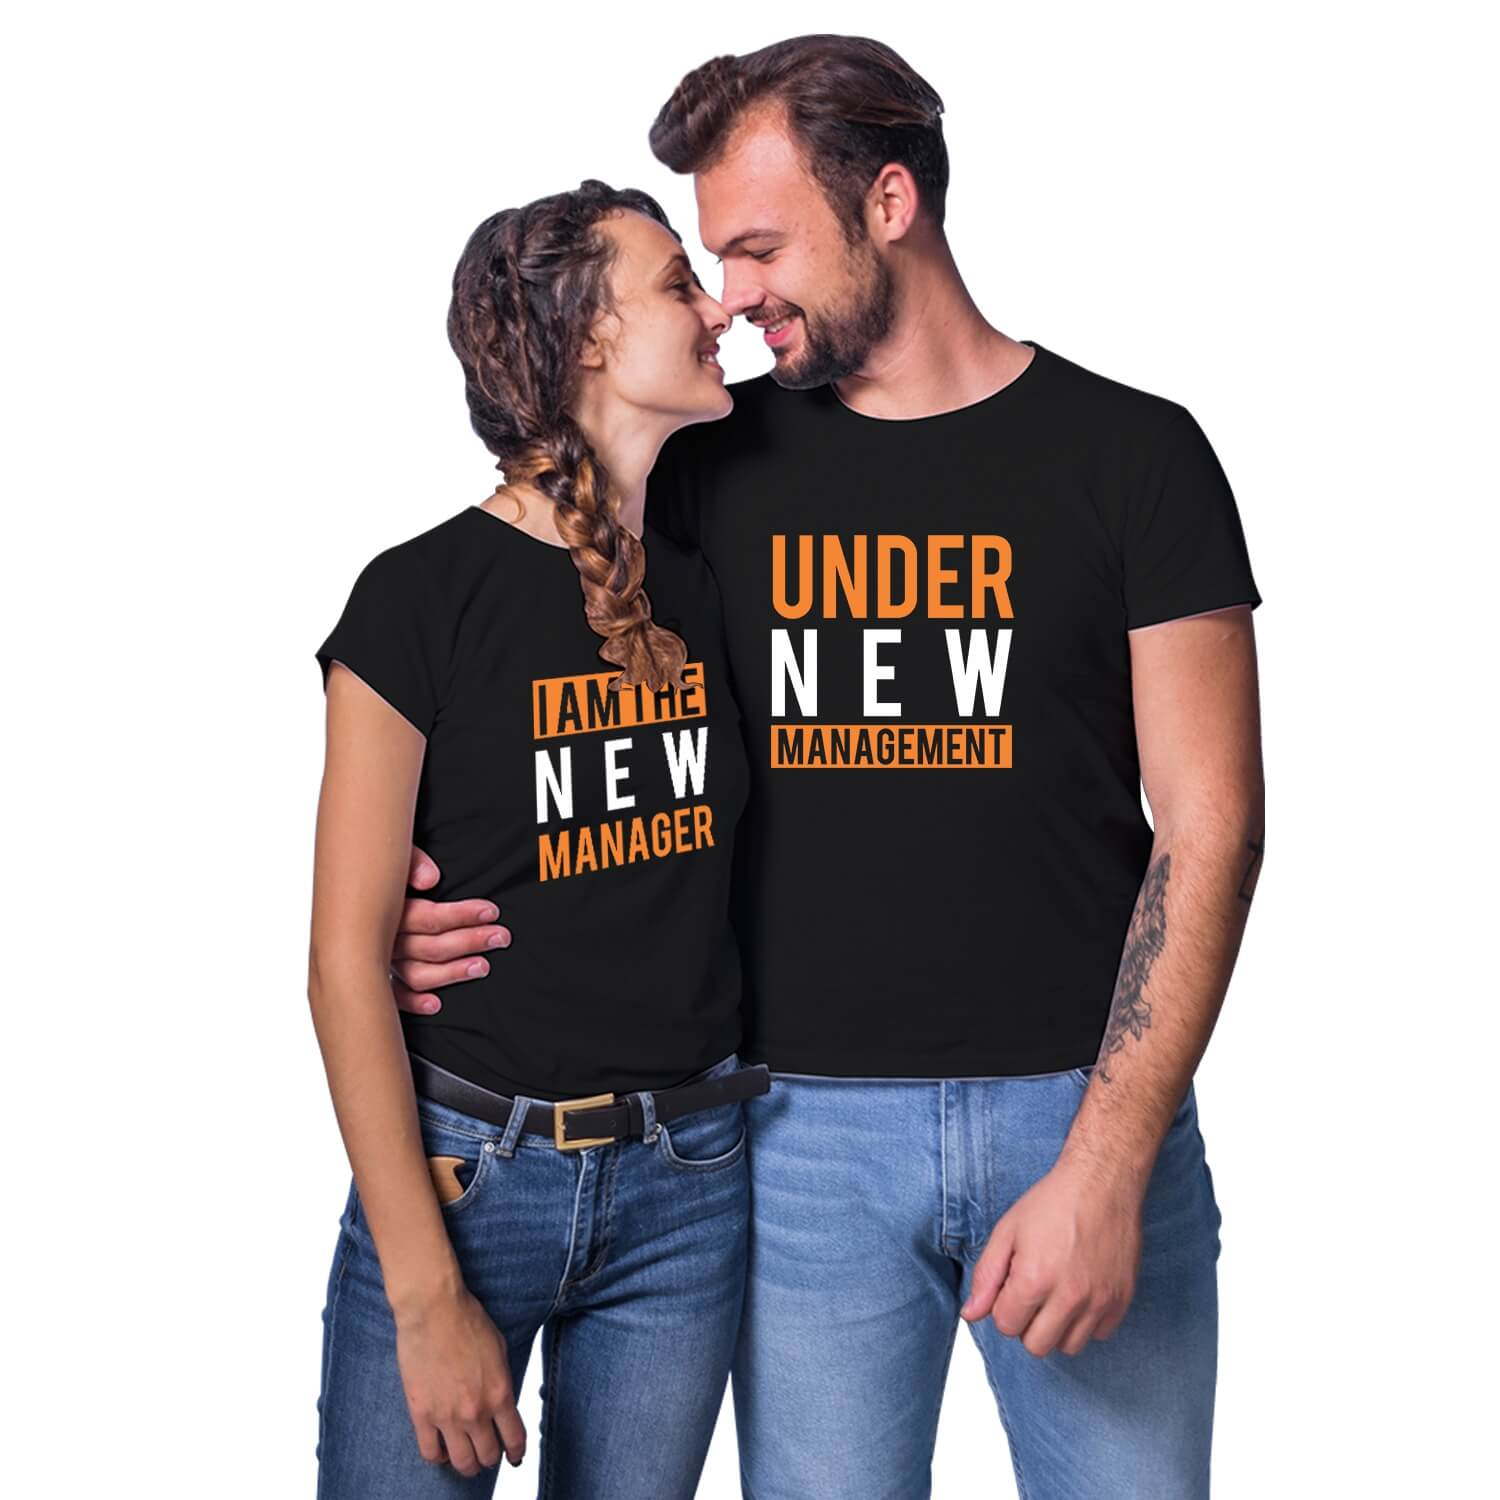 New Manager Under New Management Couple T-shirt